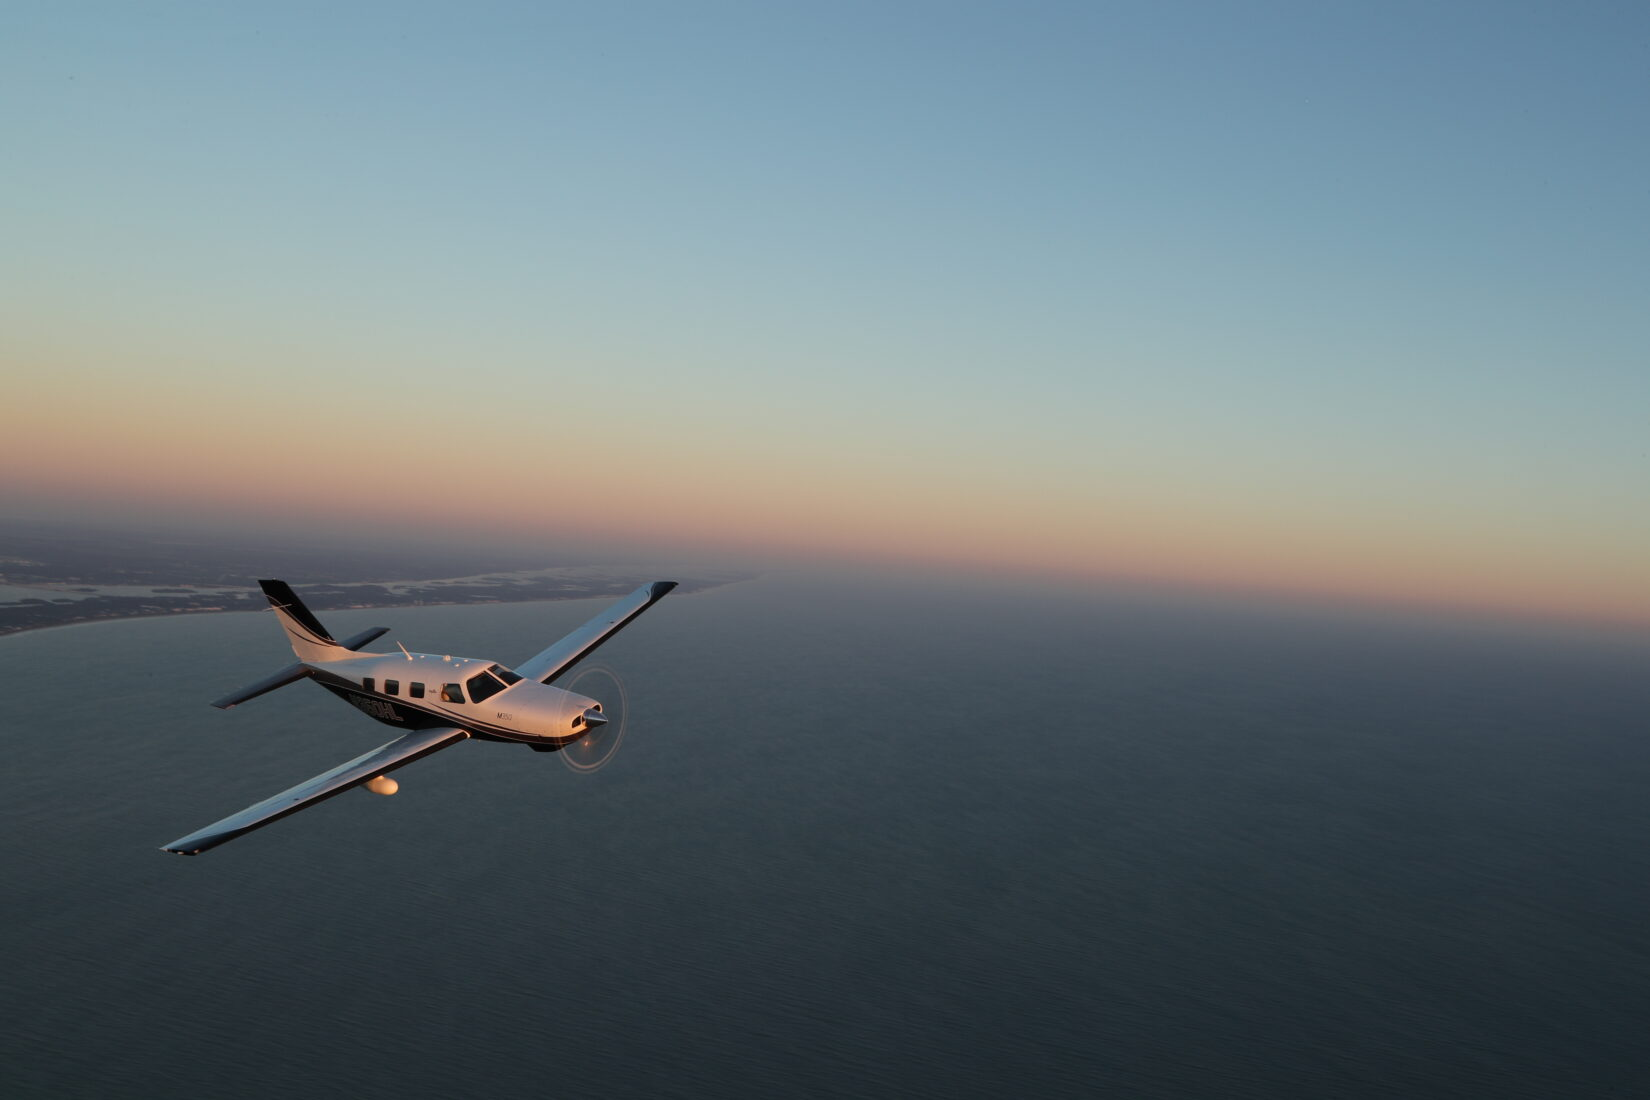 Piper M350 flying over coastline at sunset